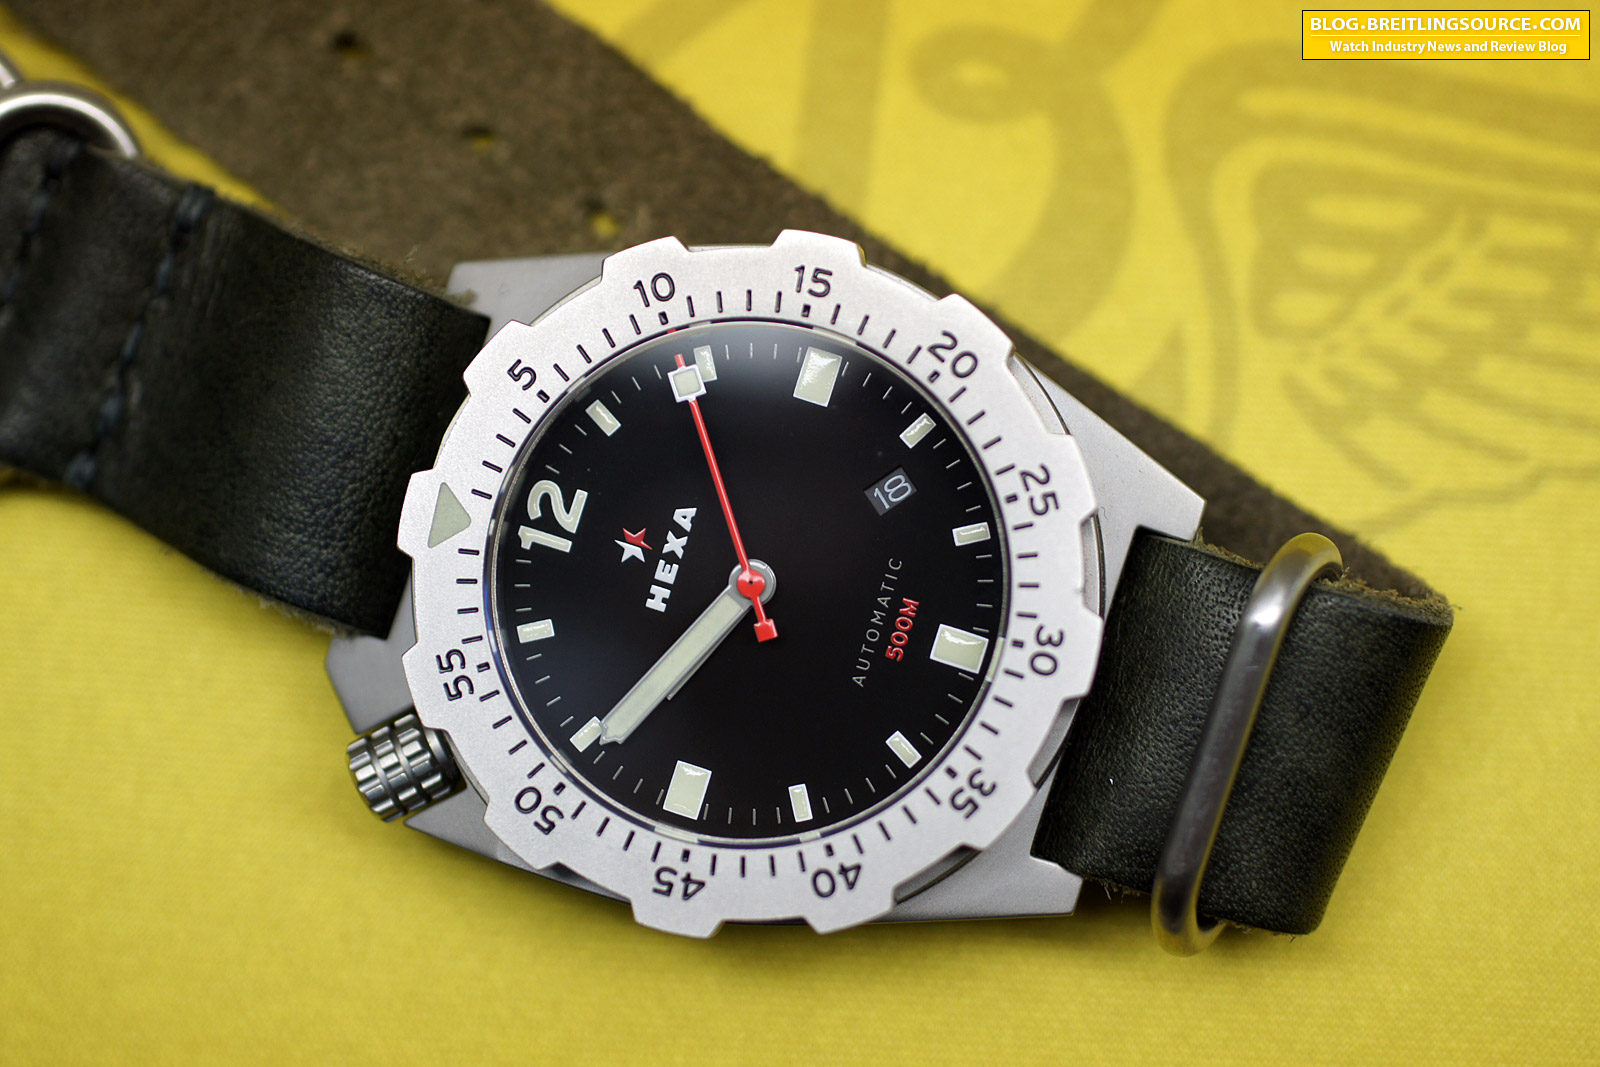 the breitling 187 dive watches